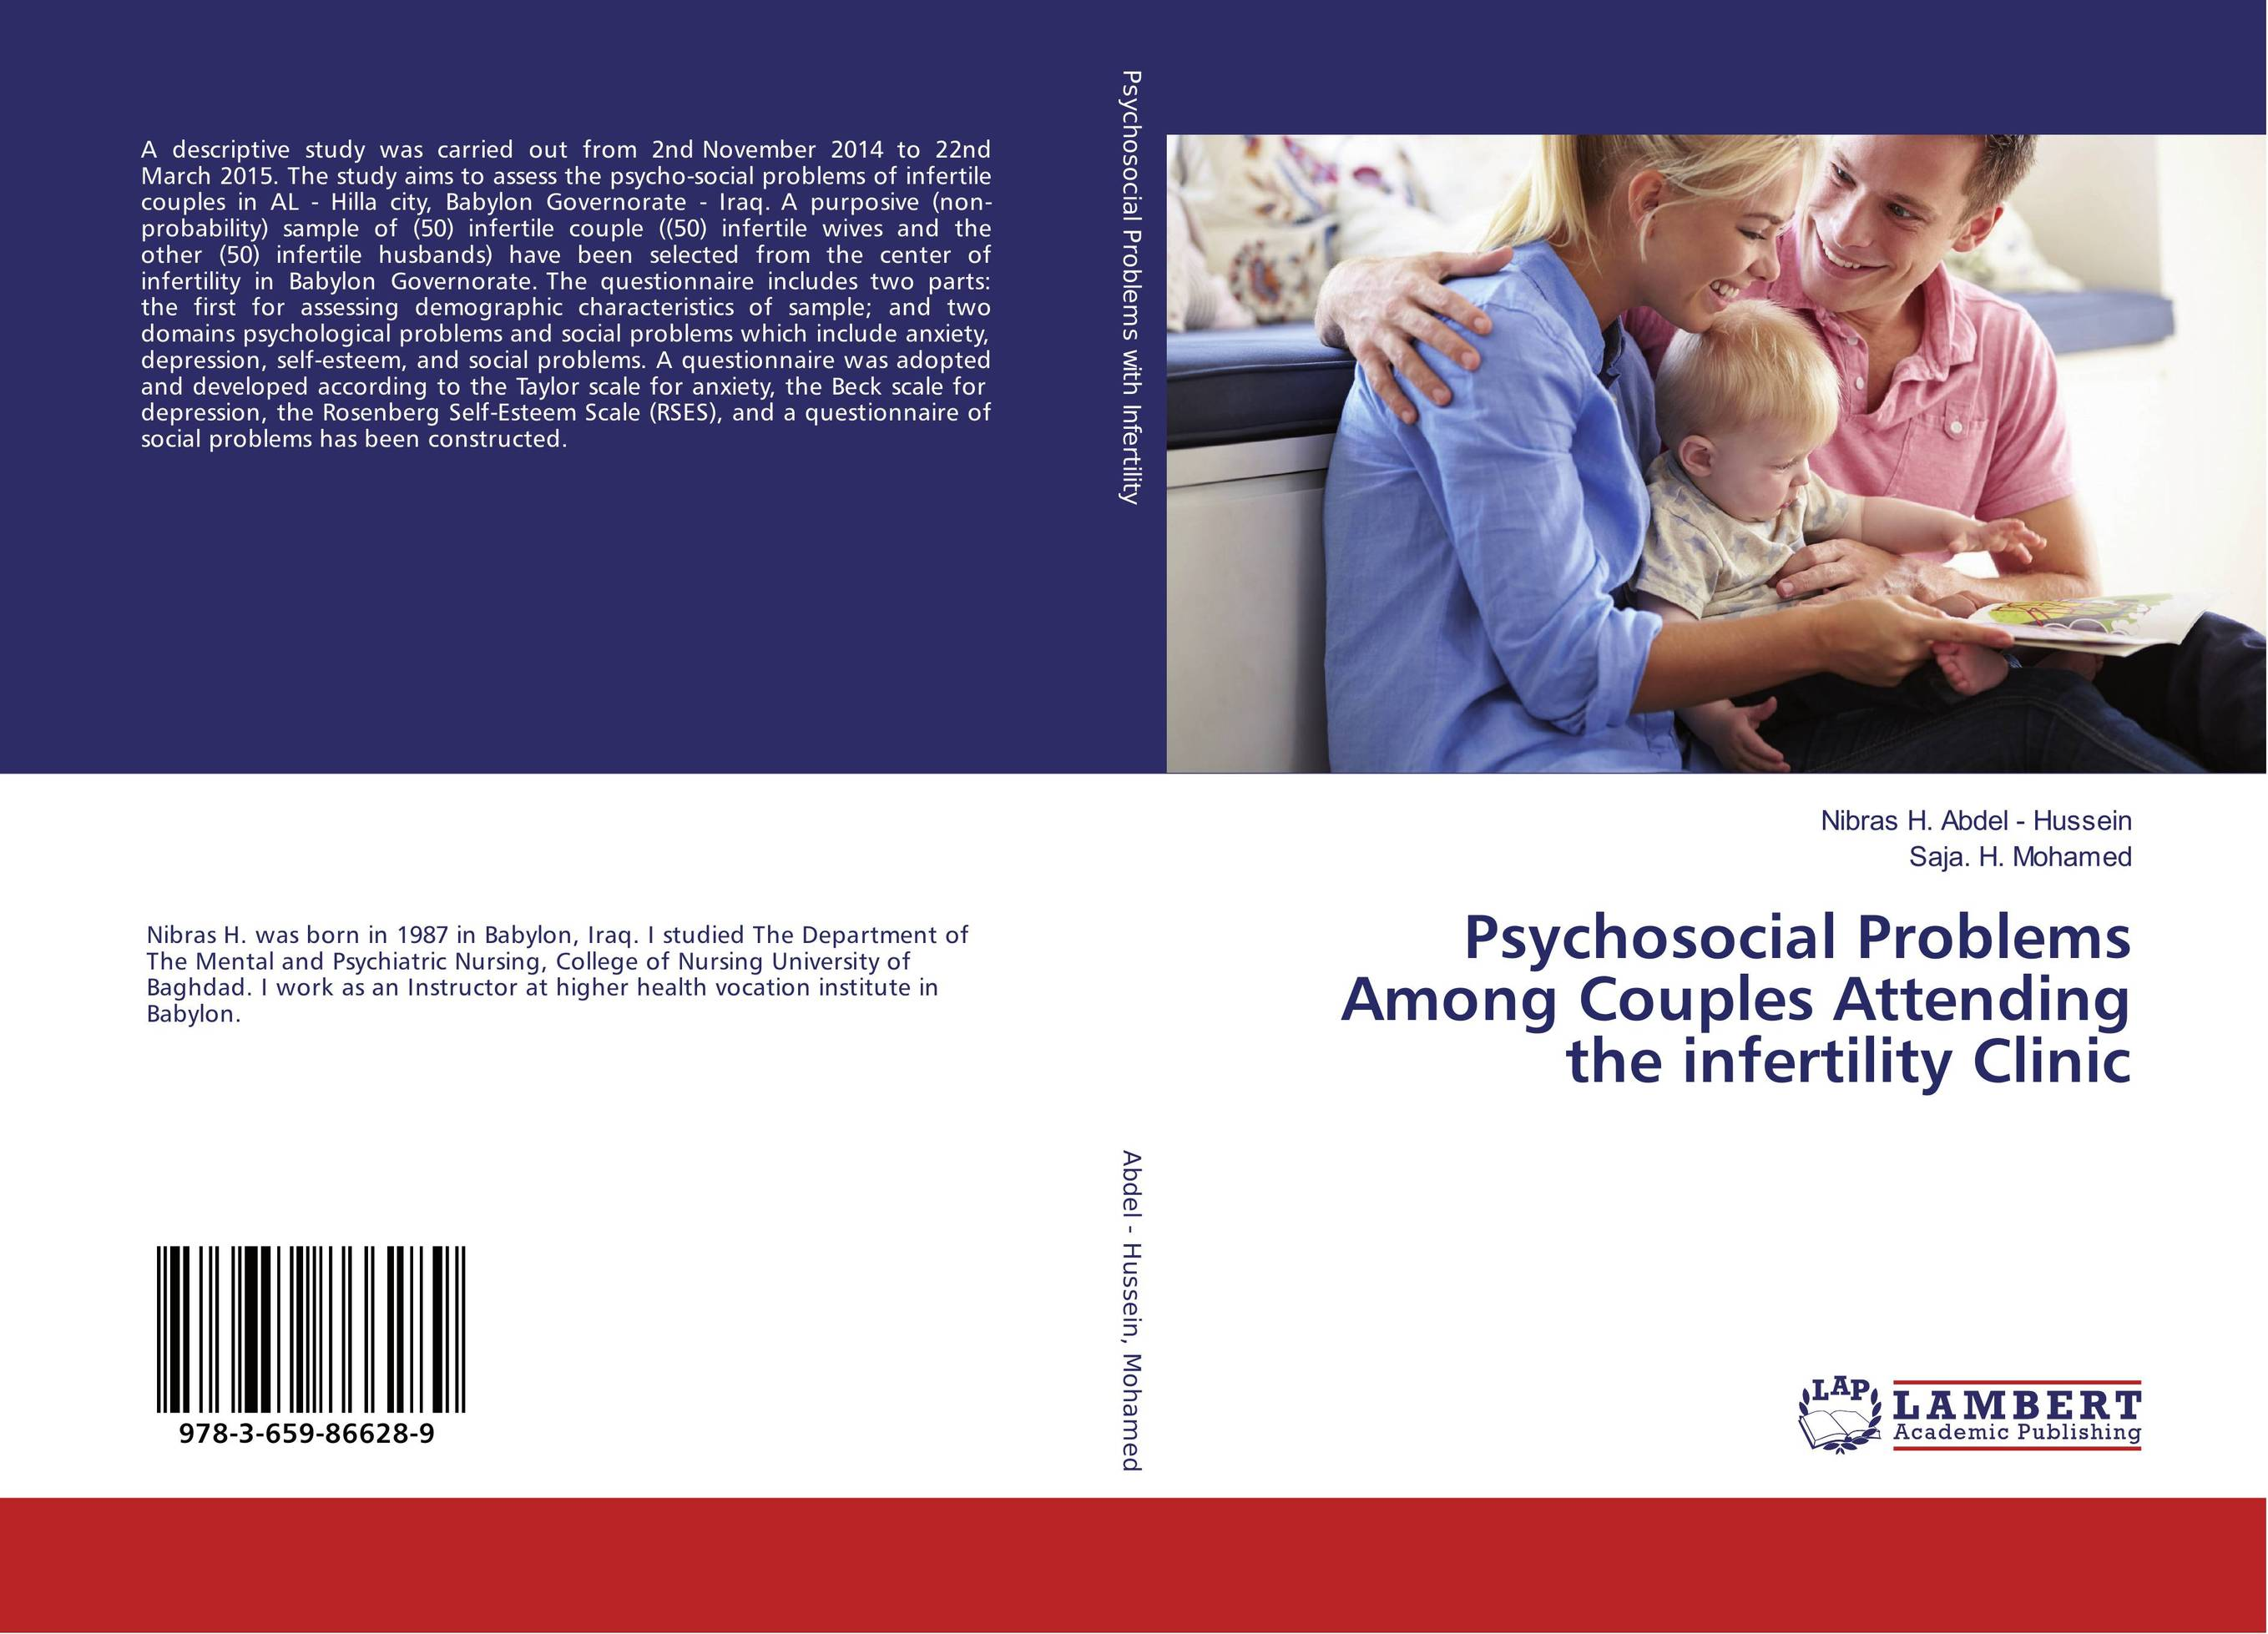 Psychosocial Problems Among Couples Attending the infertility Clinic the thirteen problems